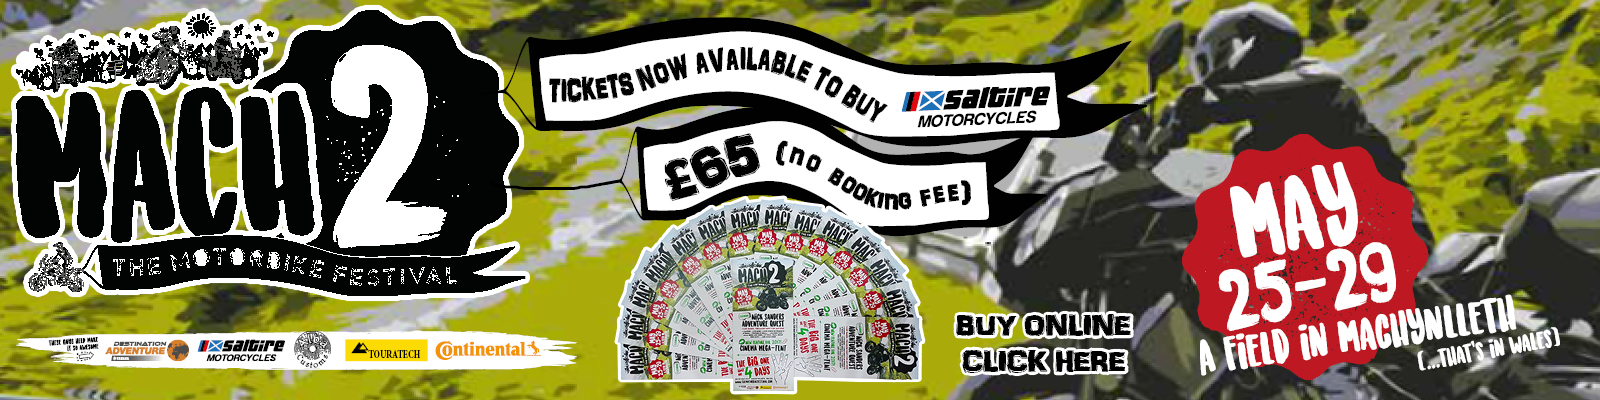 Nick Sanders Mach2, The Motorbike Festival – May 25th to 29th – Weekend Ticket